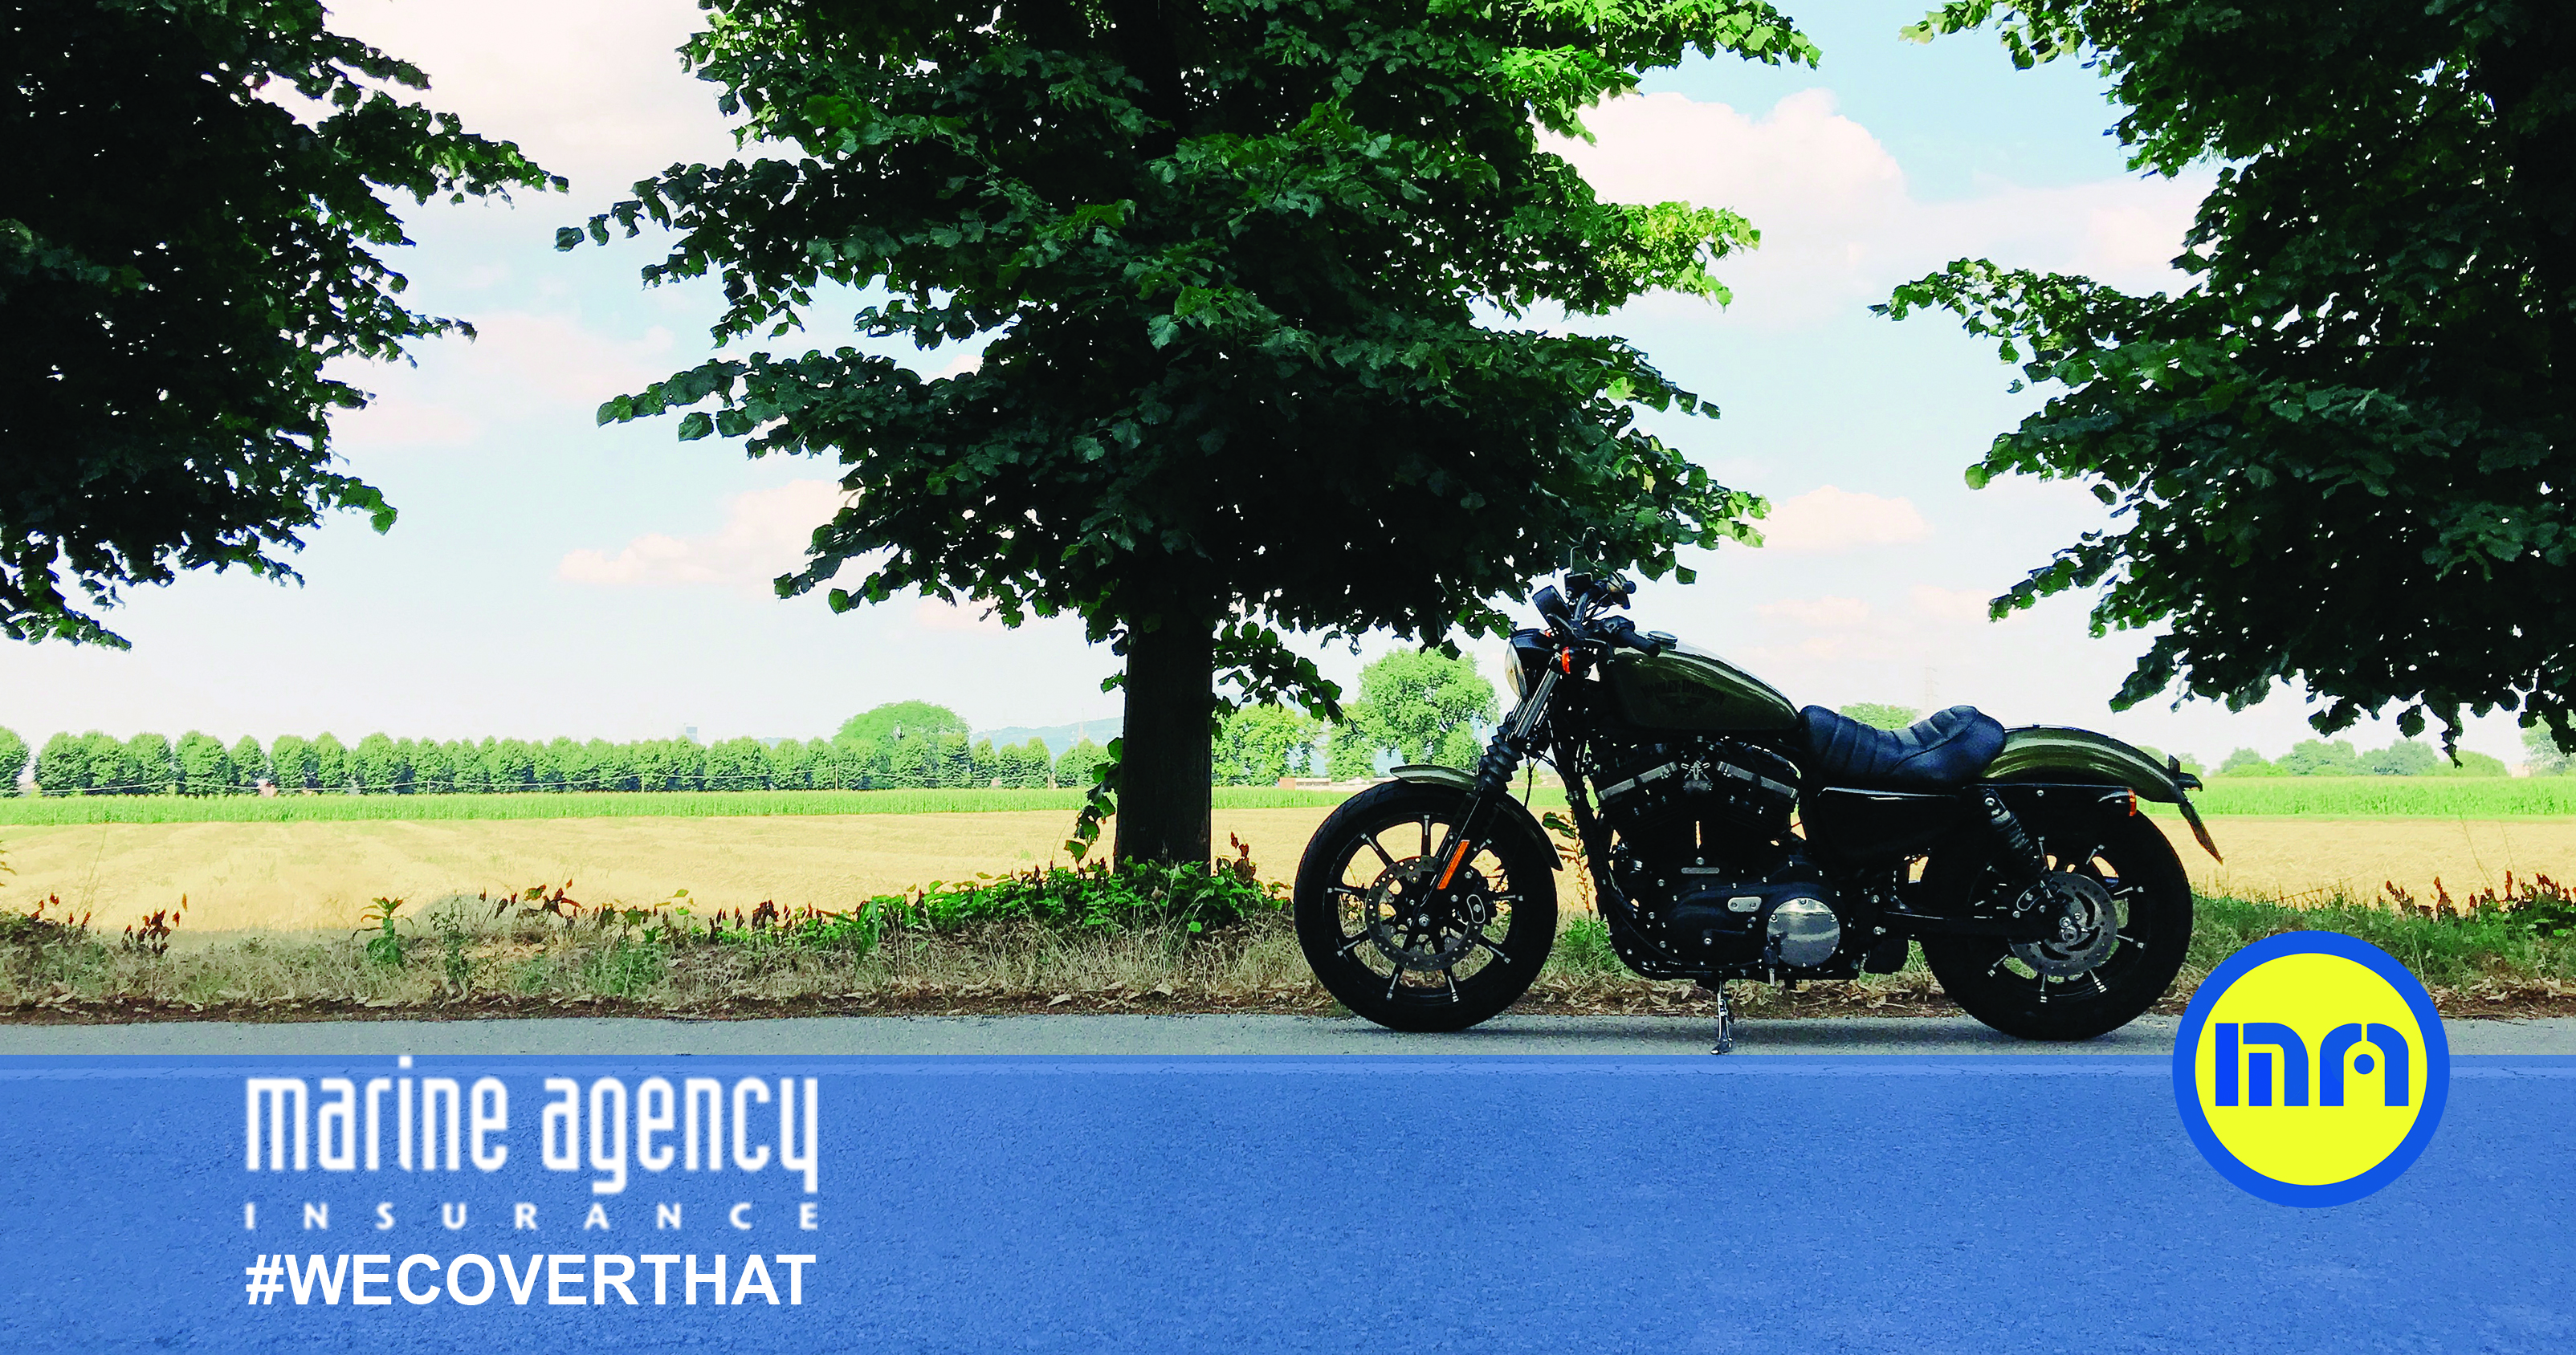 insurance for motorcycle | Marine Agency